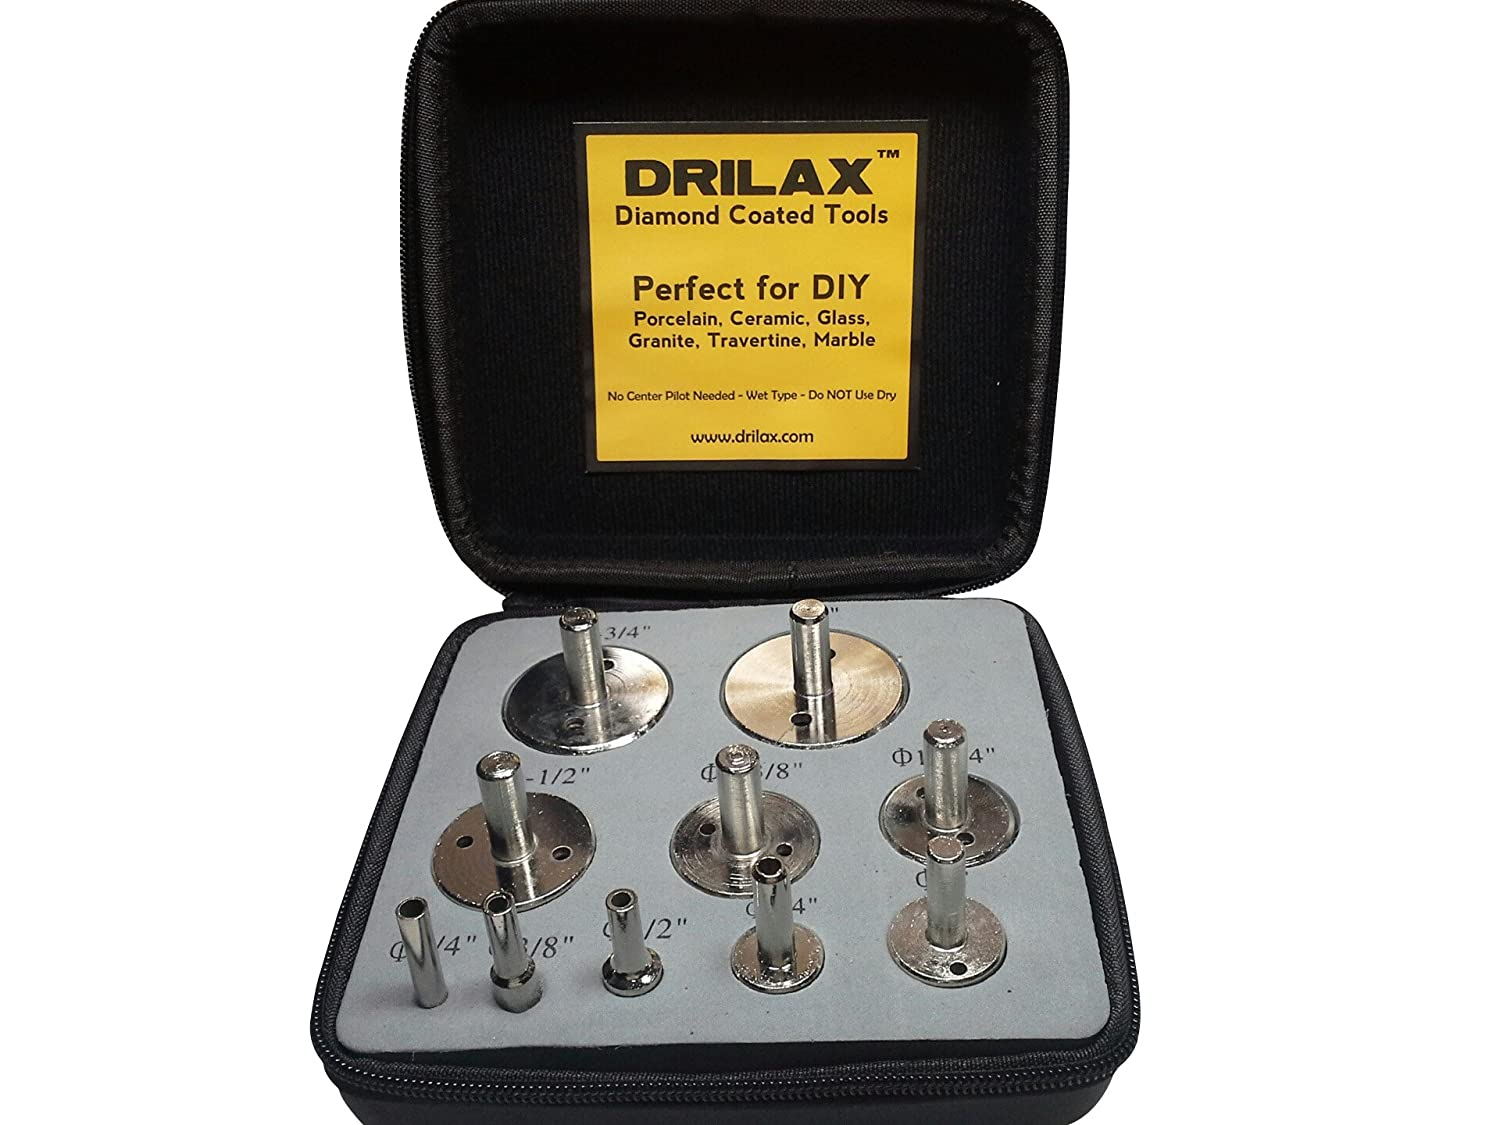 Amazoncom Drilax Pcs Diamond Drill Bit Set Hole Saws For - Cutting holes in tile for plumbing